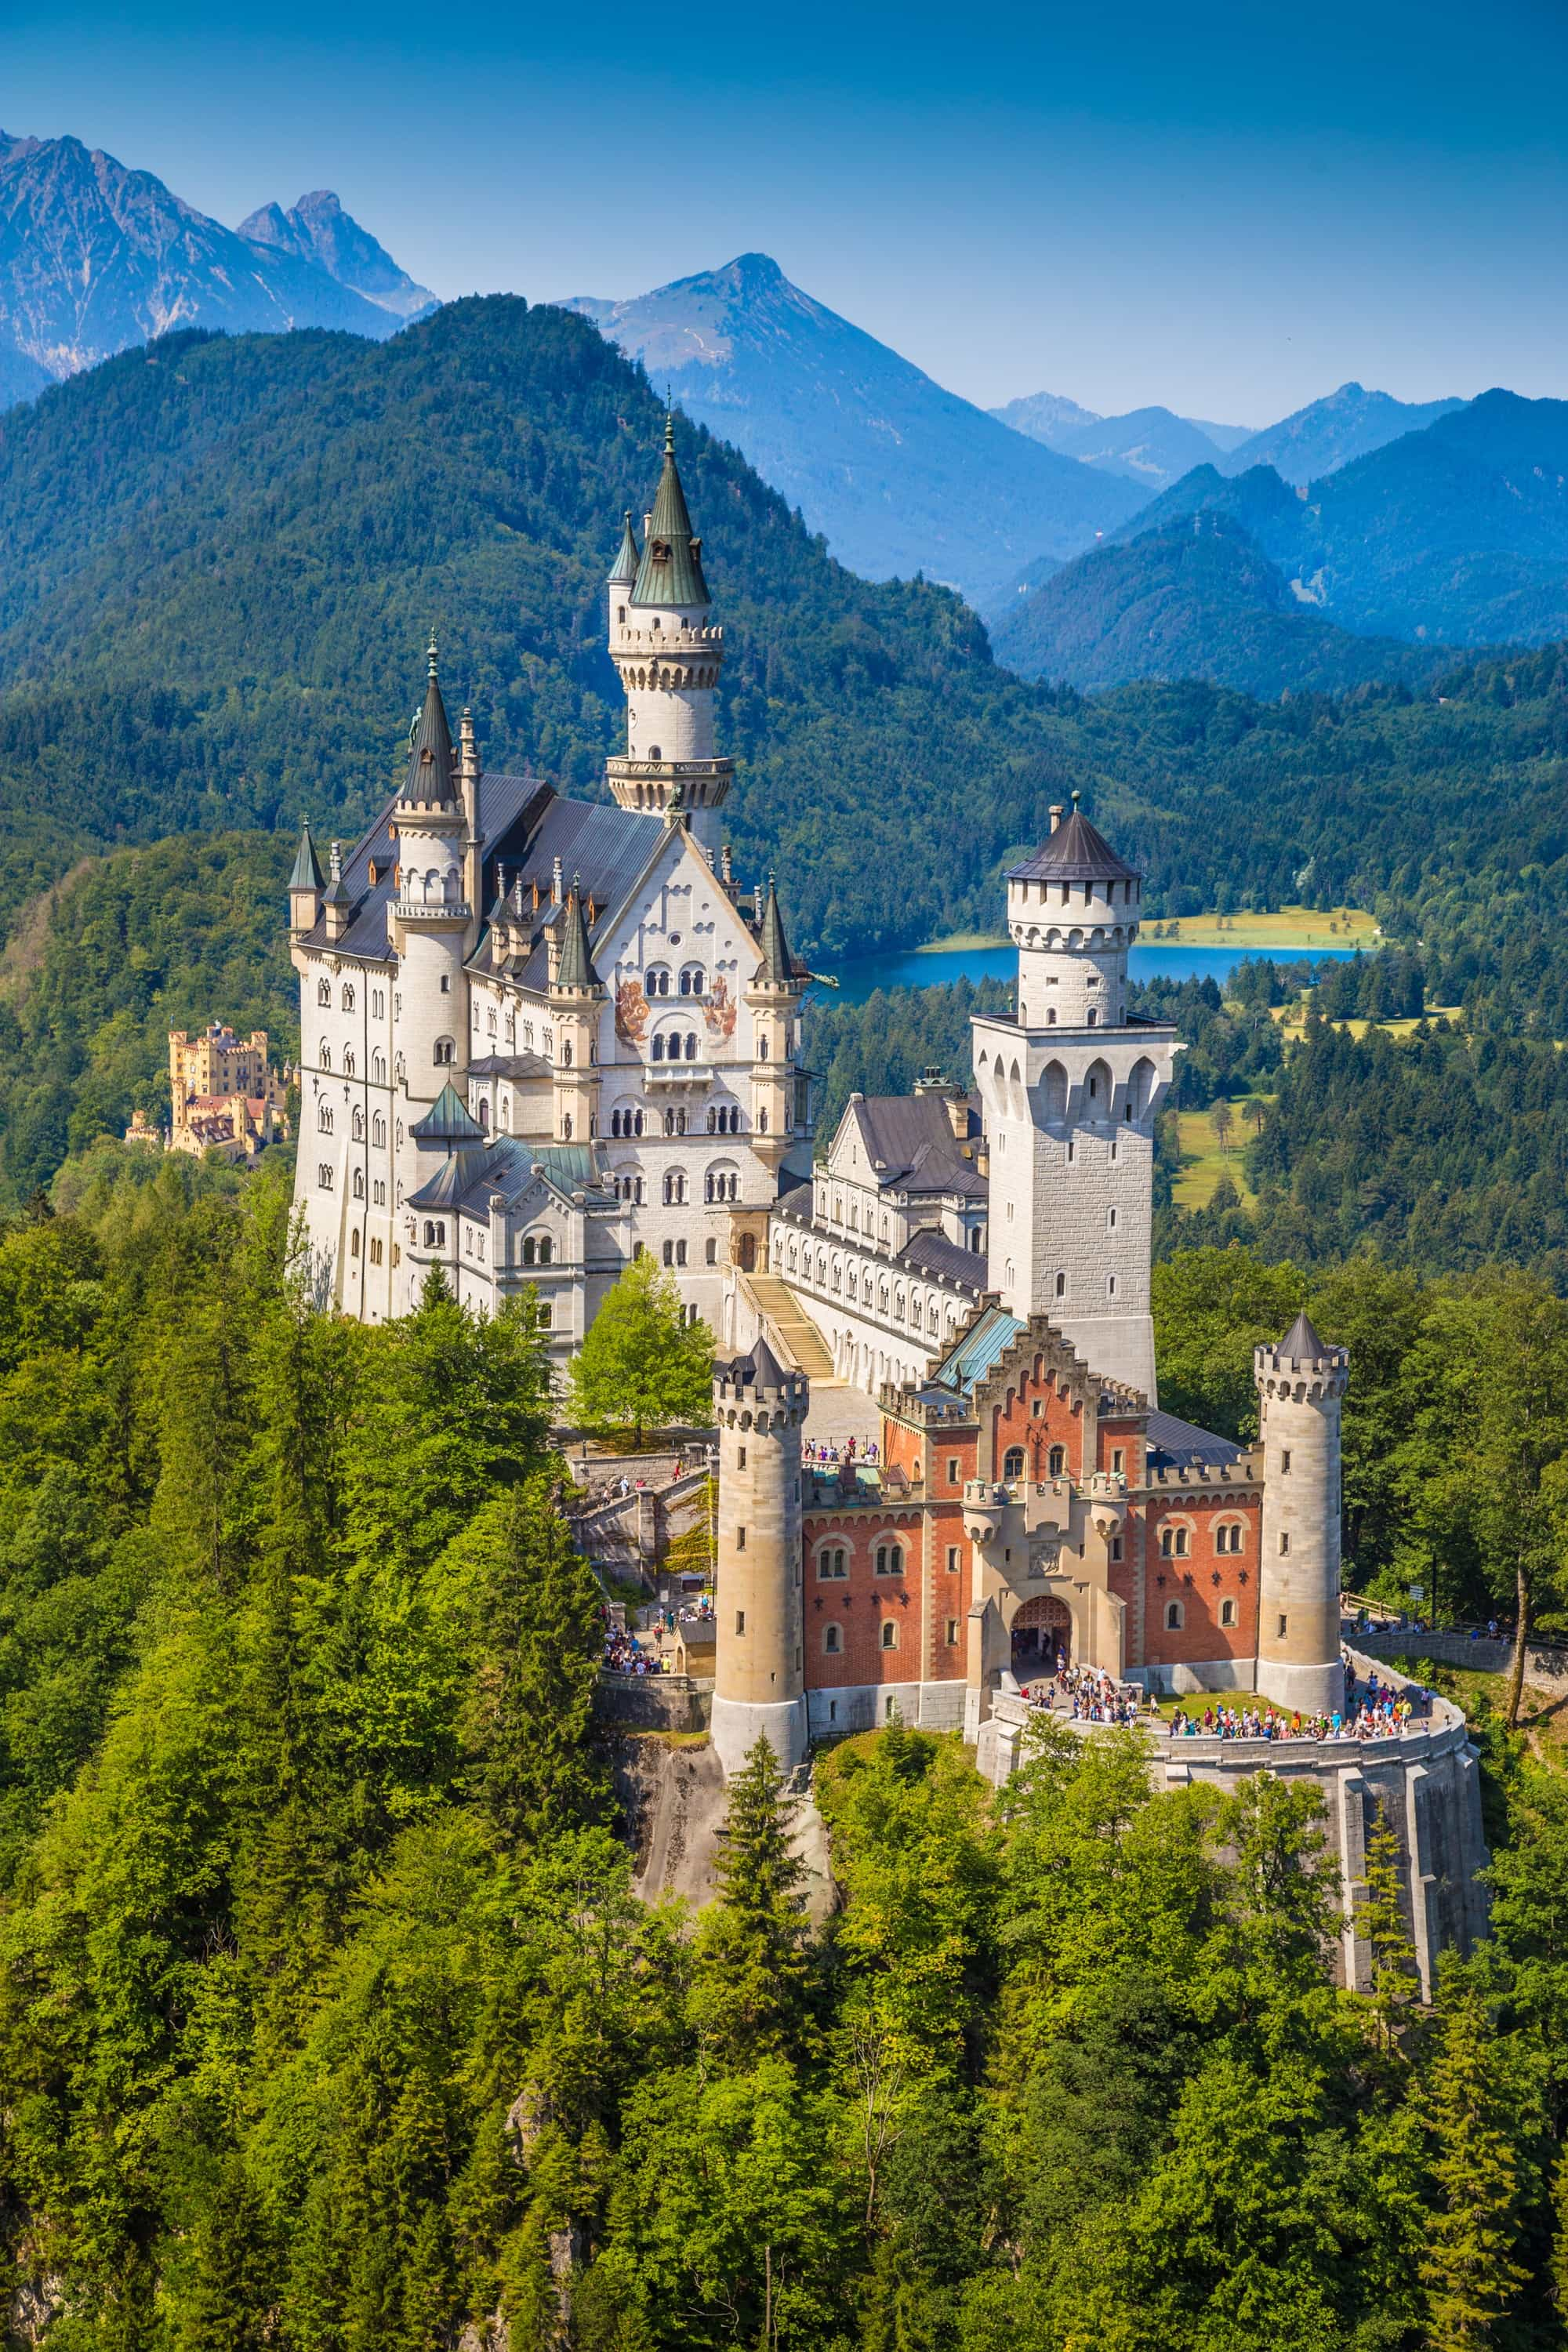 The world-famous Neuschwanstein Castle, the nineteenth-century Romanesque Revival palace built for King Ludwig II